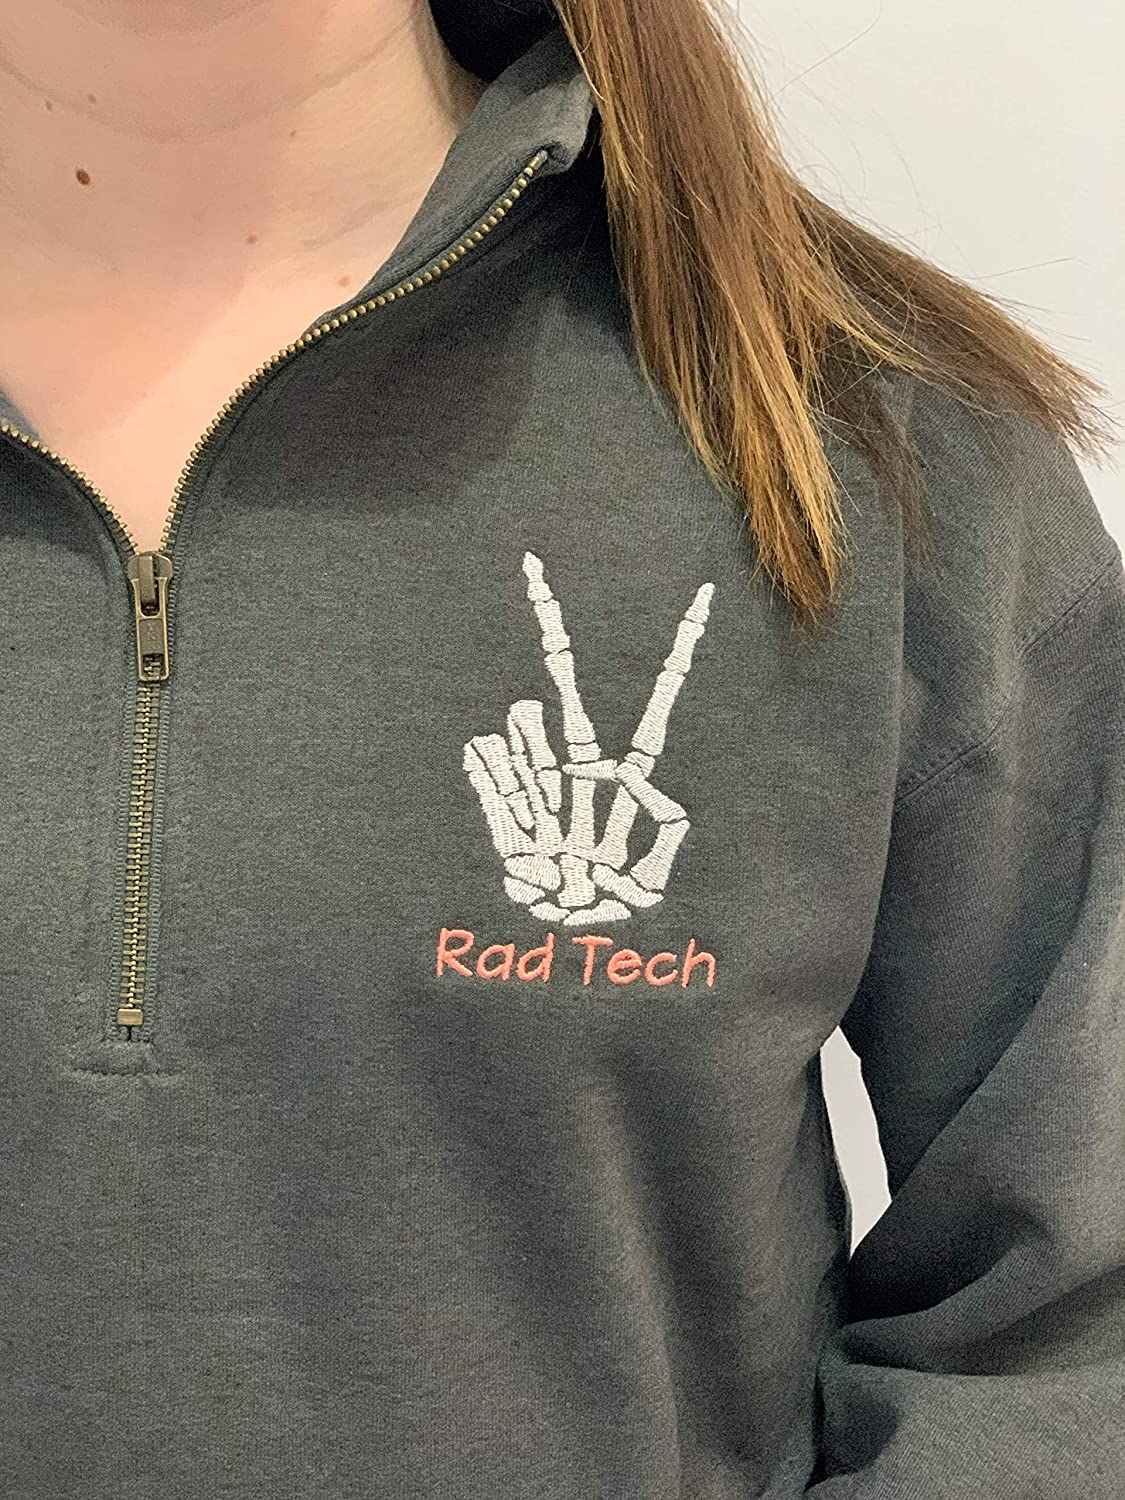 S rad tech sweatshirt gift for x-ray office staff coworker wife RTR graduation pullover jacket